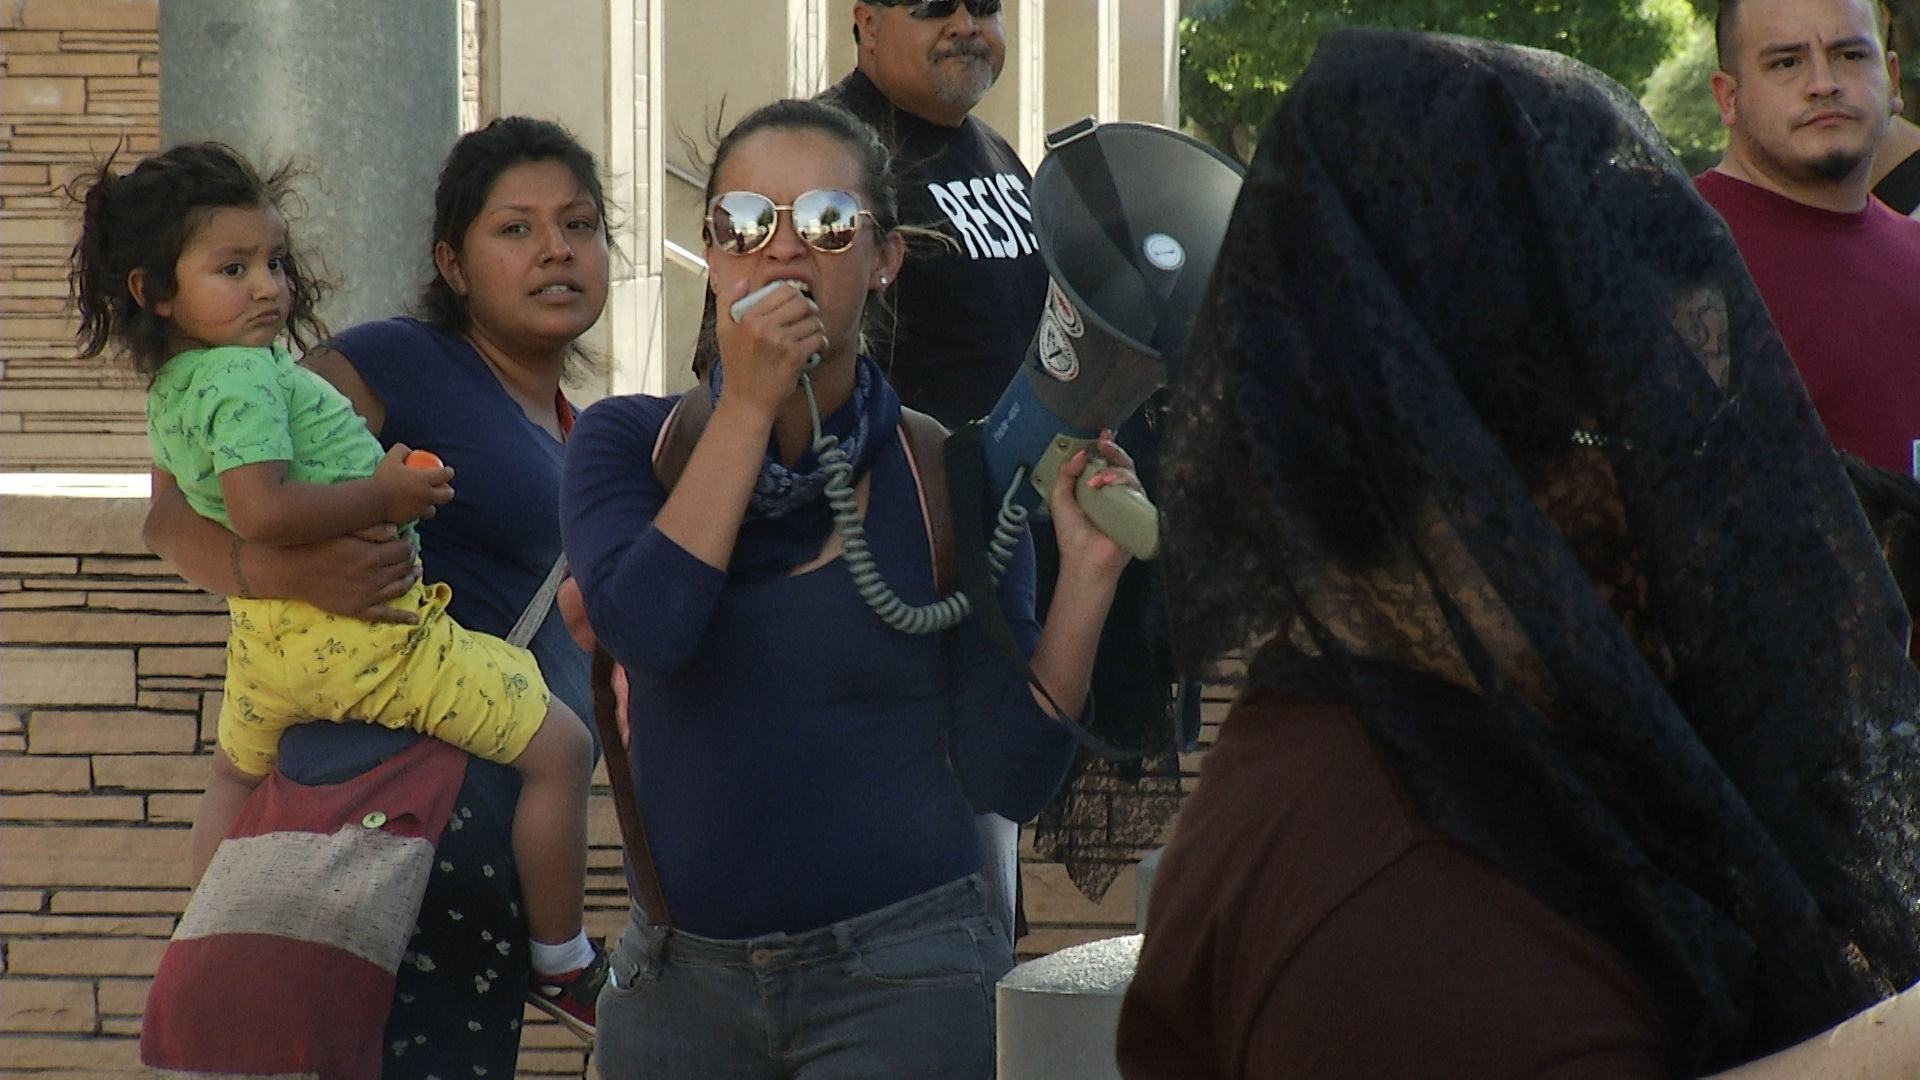 Protesters react to the not guilty verdict handed down in the second-degree murder trial of Border Patrol agent Lonnie Swartz outside of federal courthouse in Tucson.